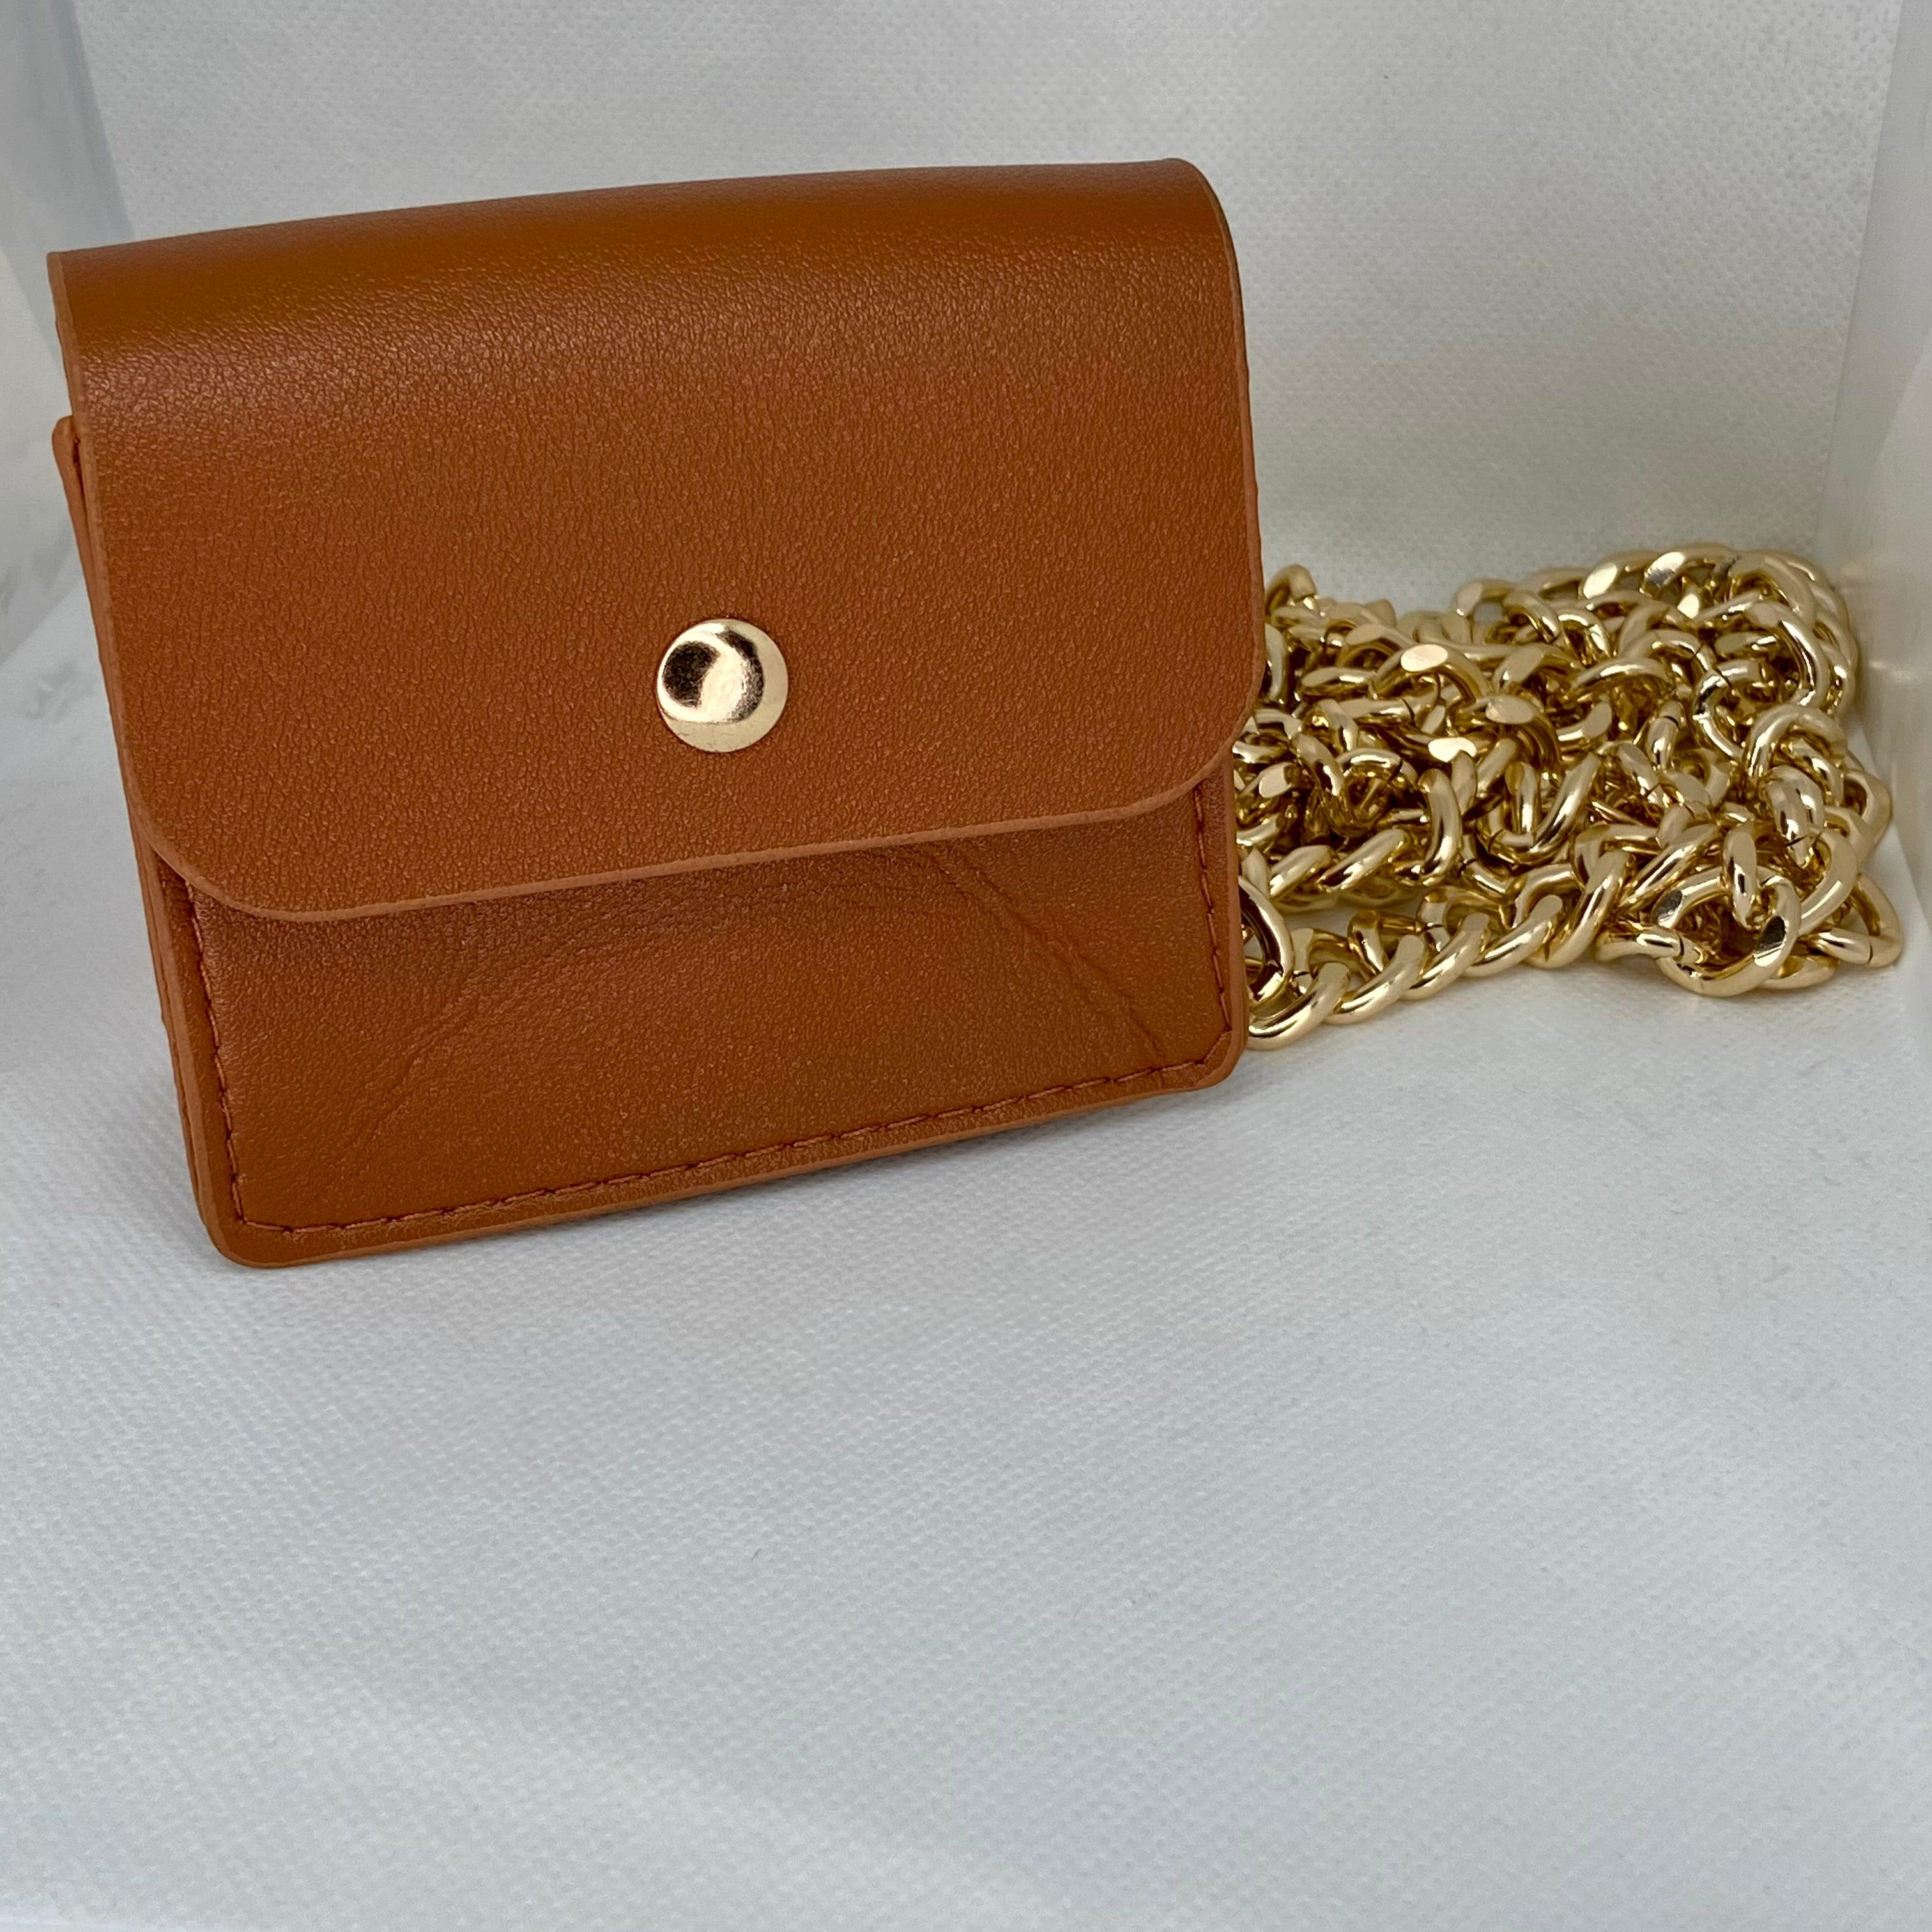 Camel Pouch With Gold Chain Hardware